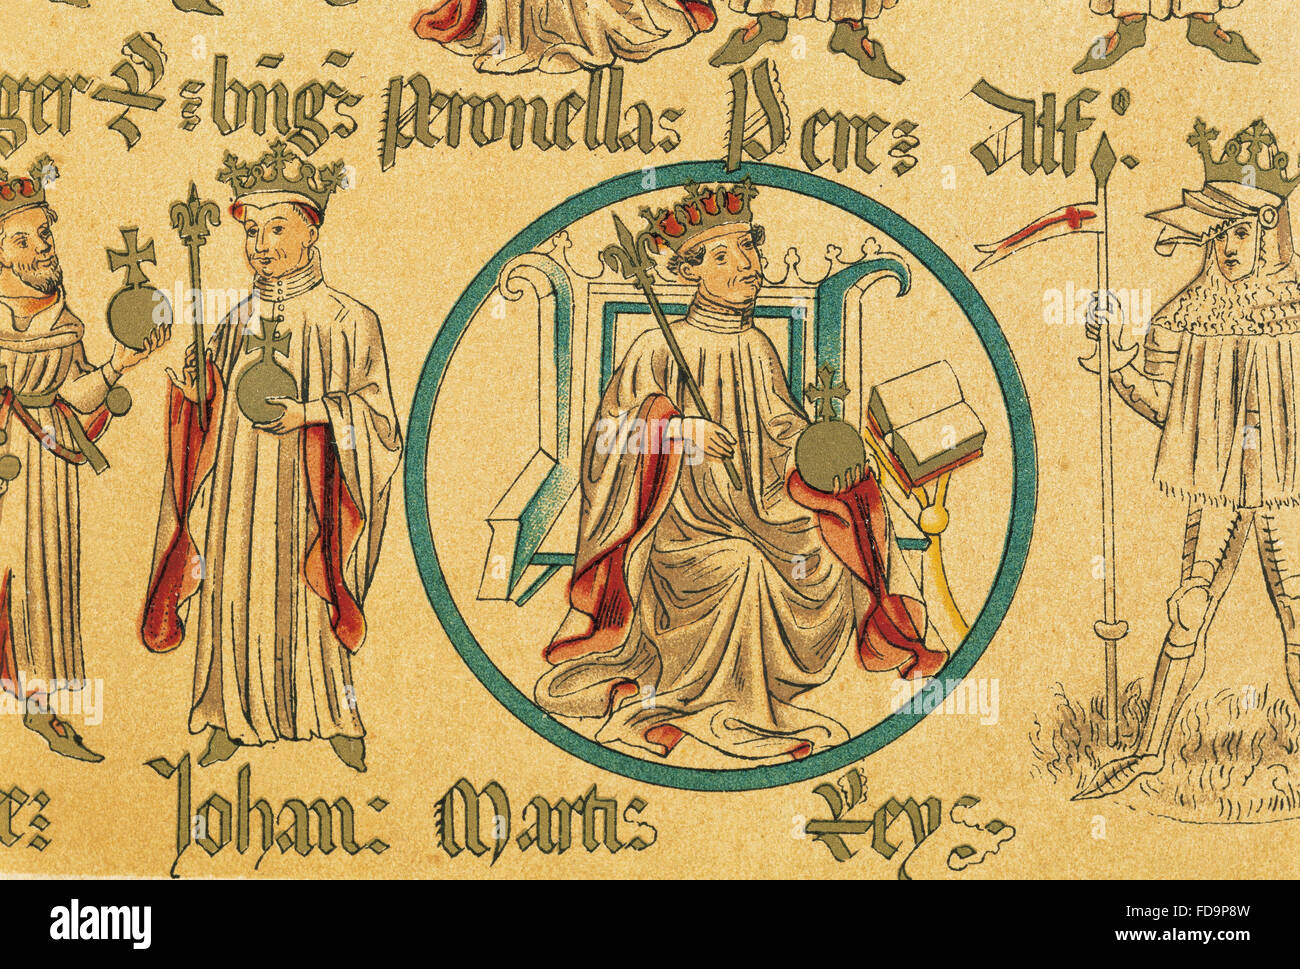 Martin of Aragon The Humane (1356-1410). King of Aragon, Valencia and Majorca and Count of Barcelona. Copy of Genealogy - Stock Image